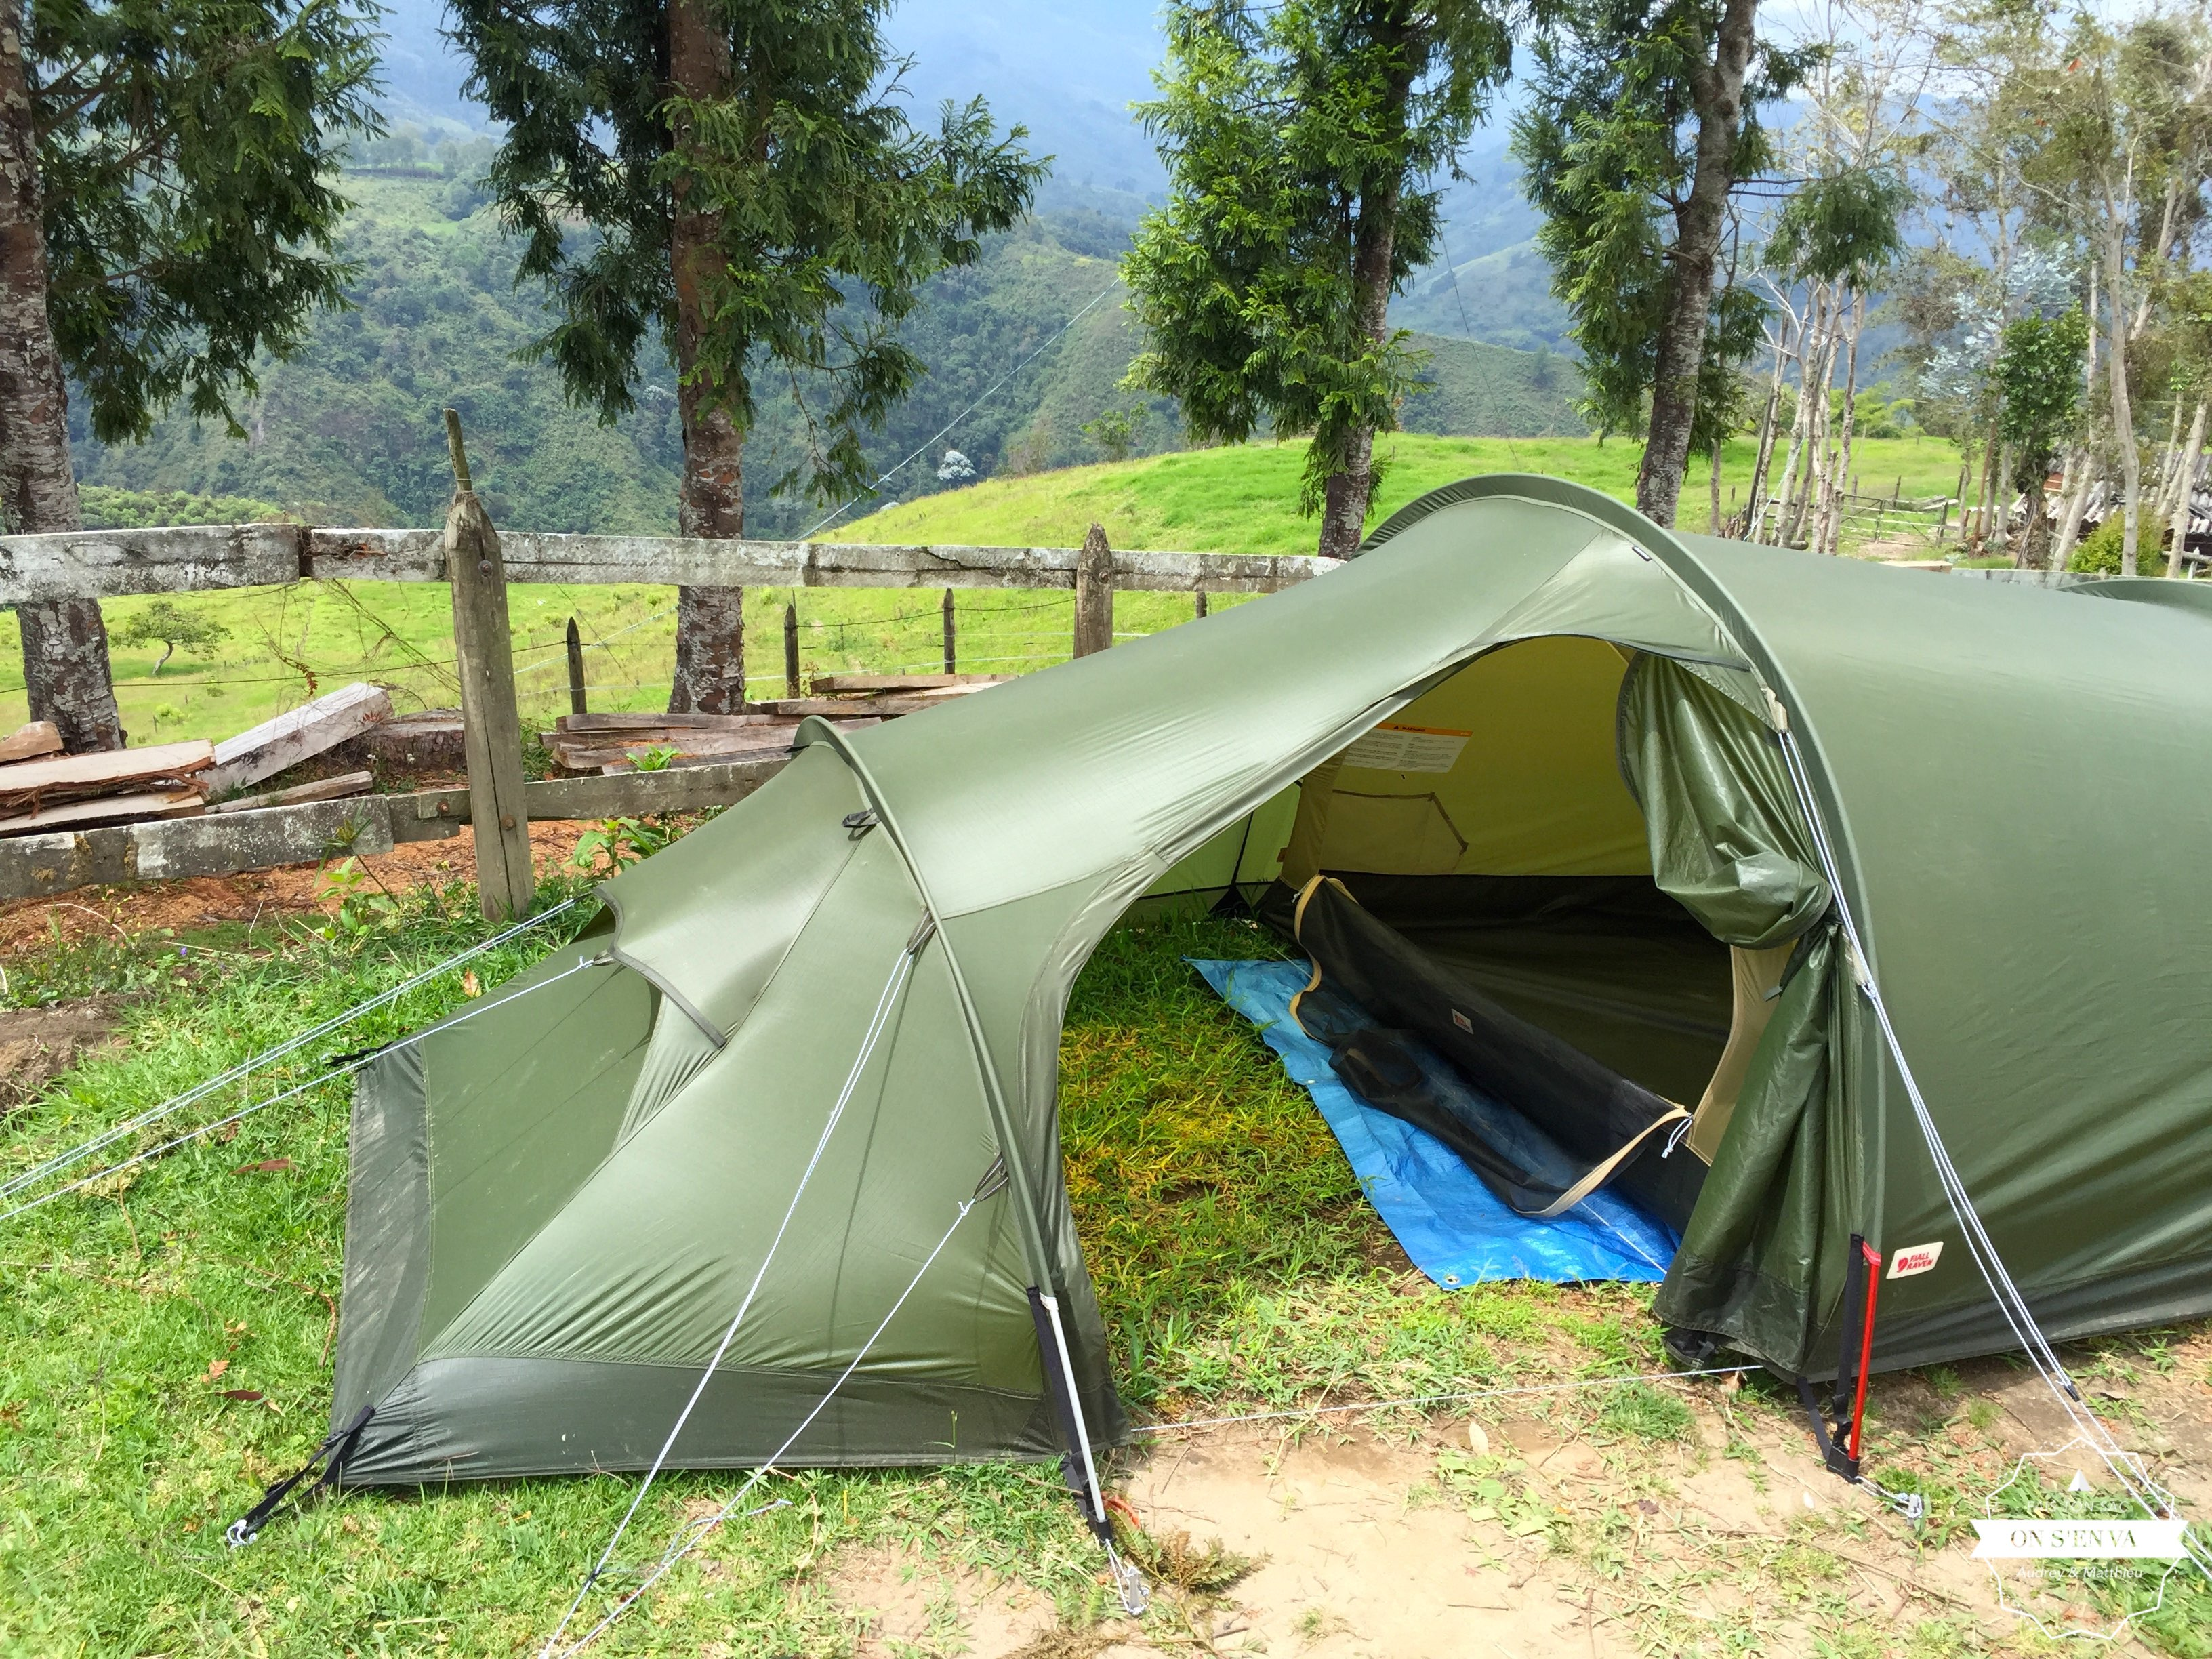 Camping luxe!